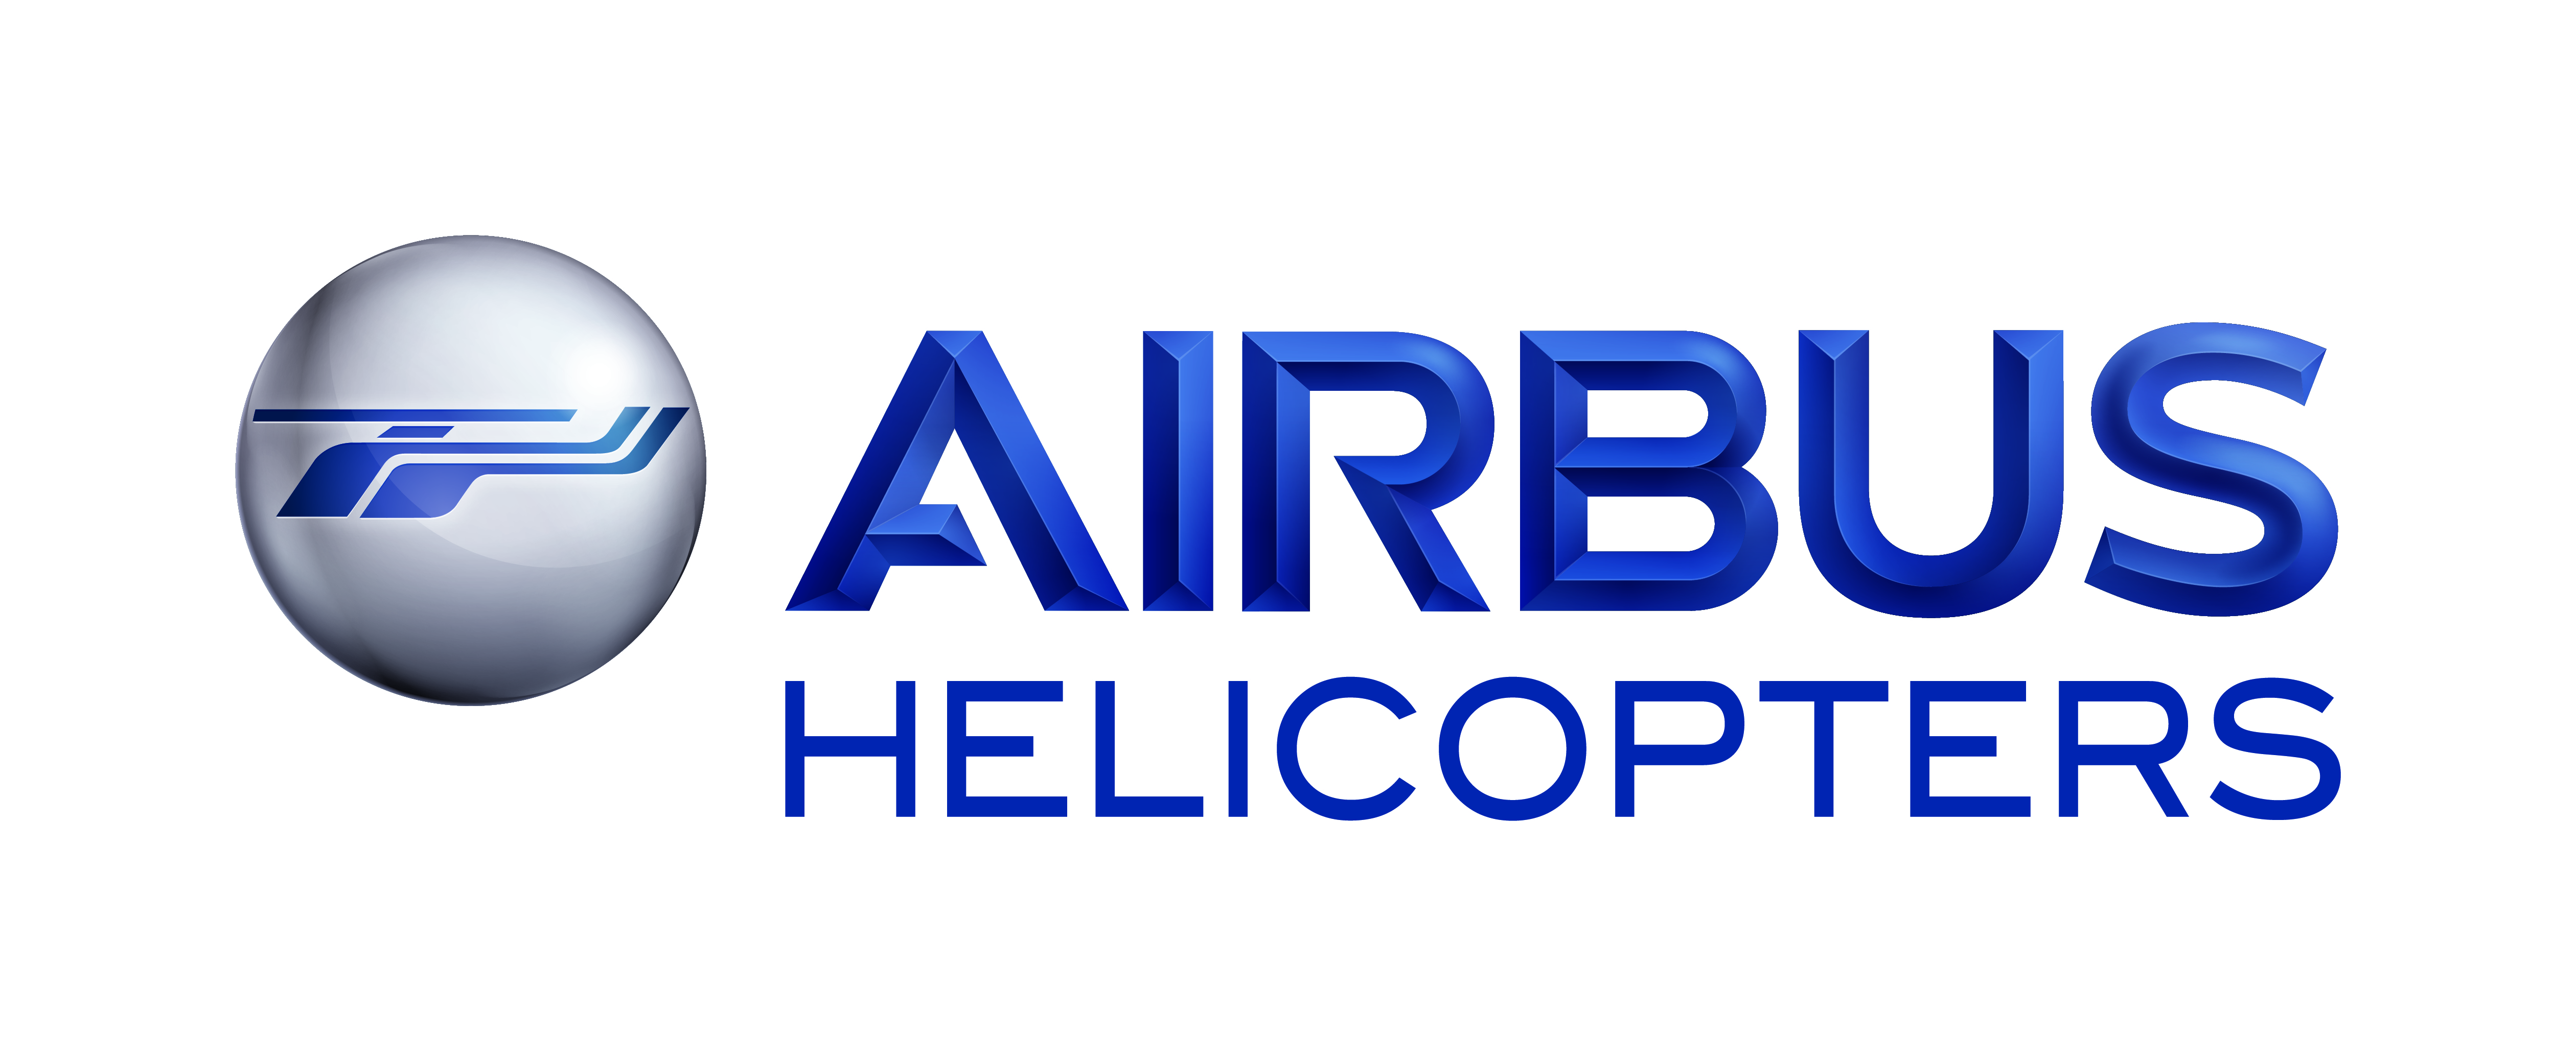 AIRBUS Helicopters 3D Blue CMYK